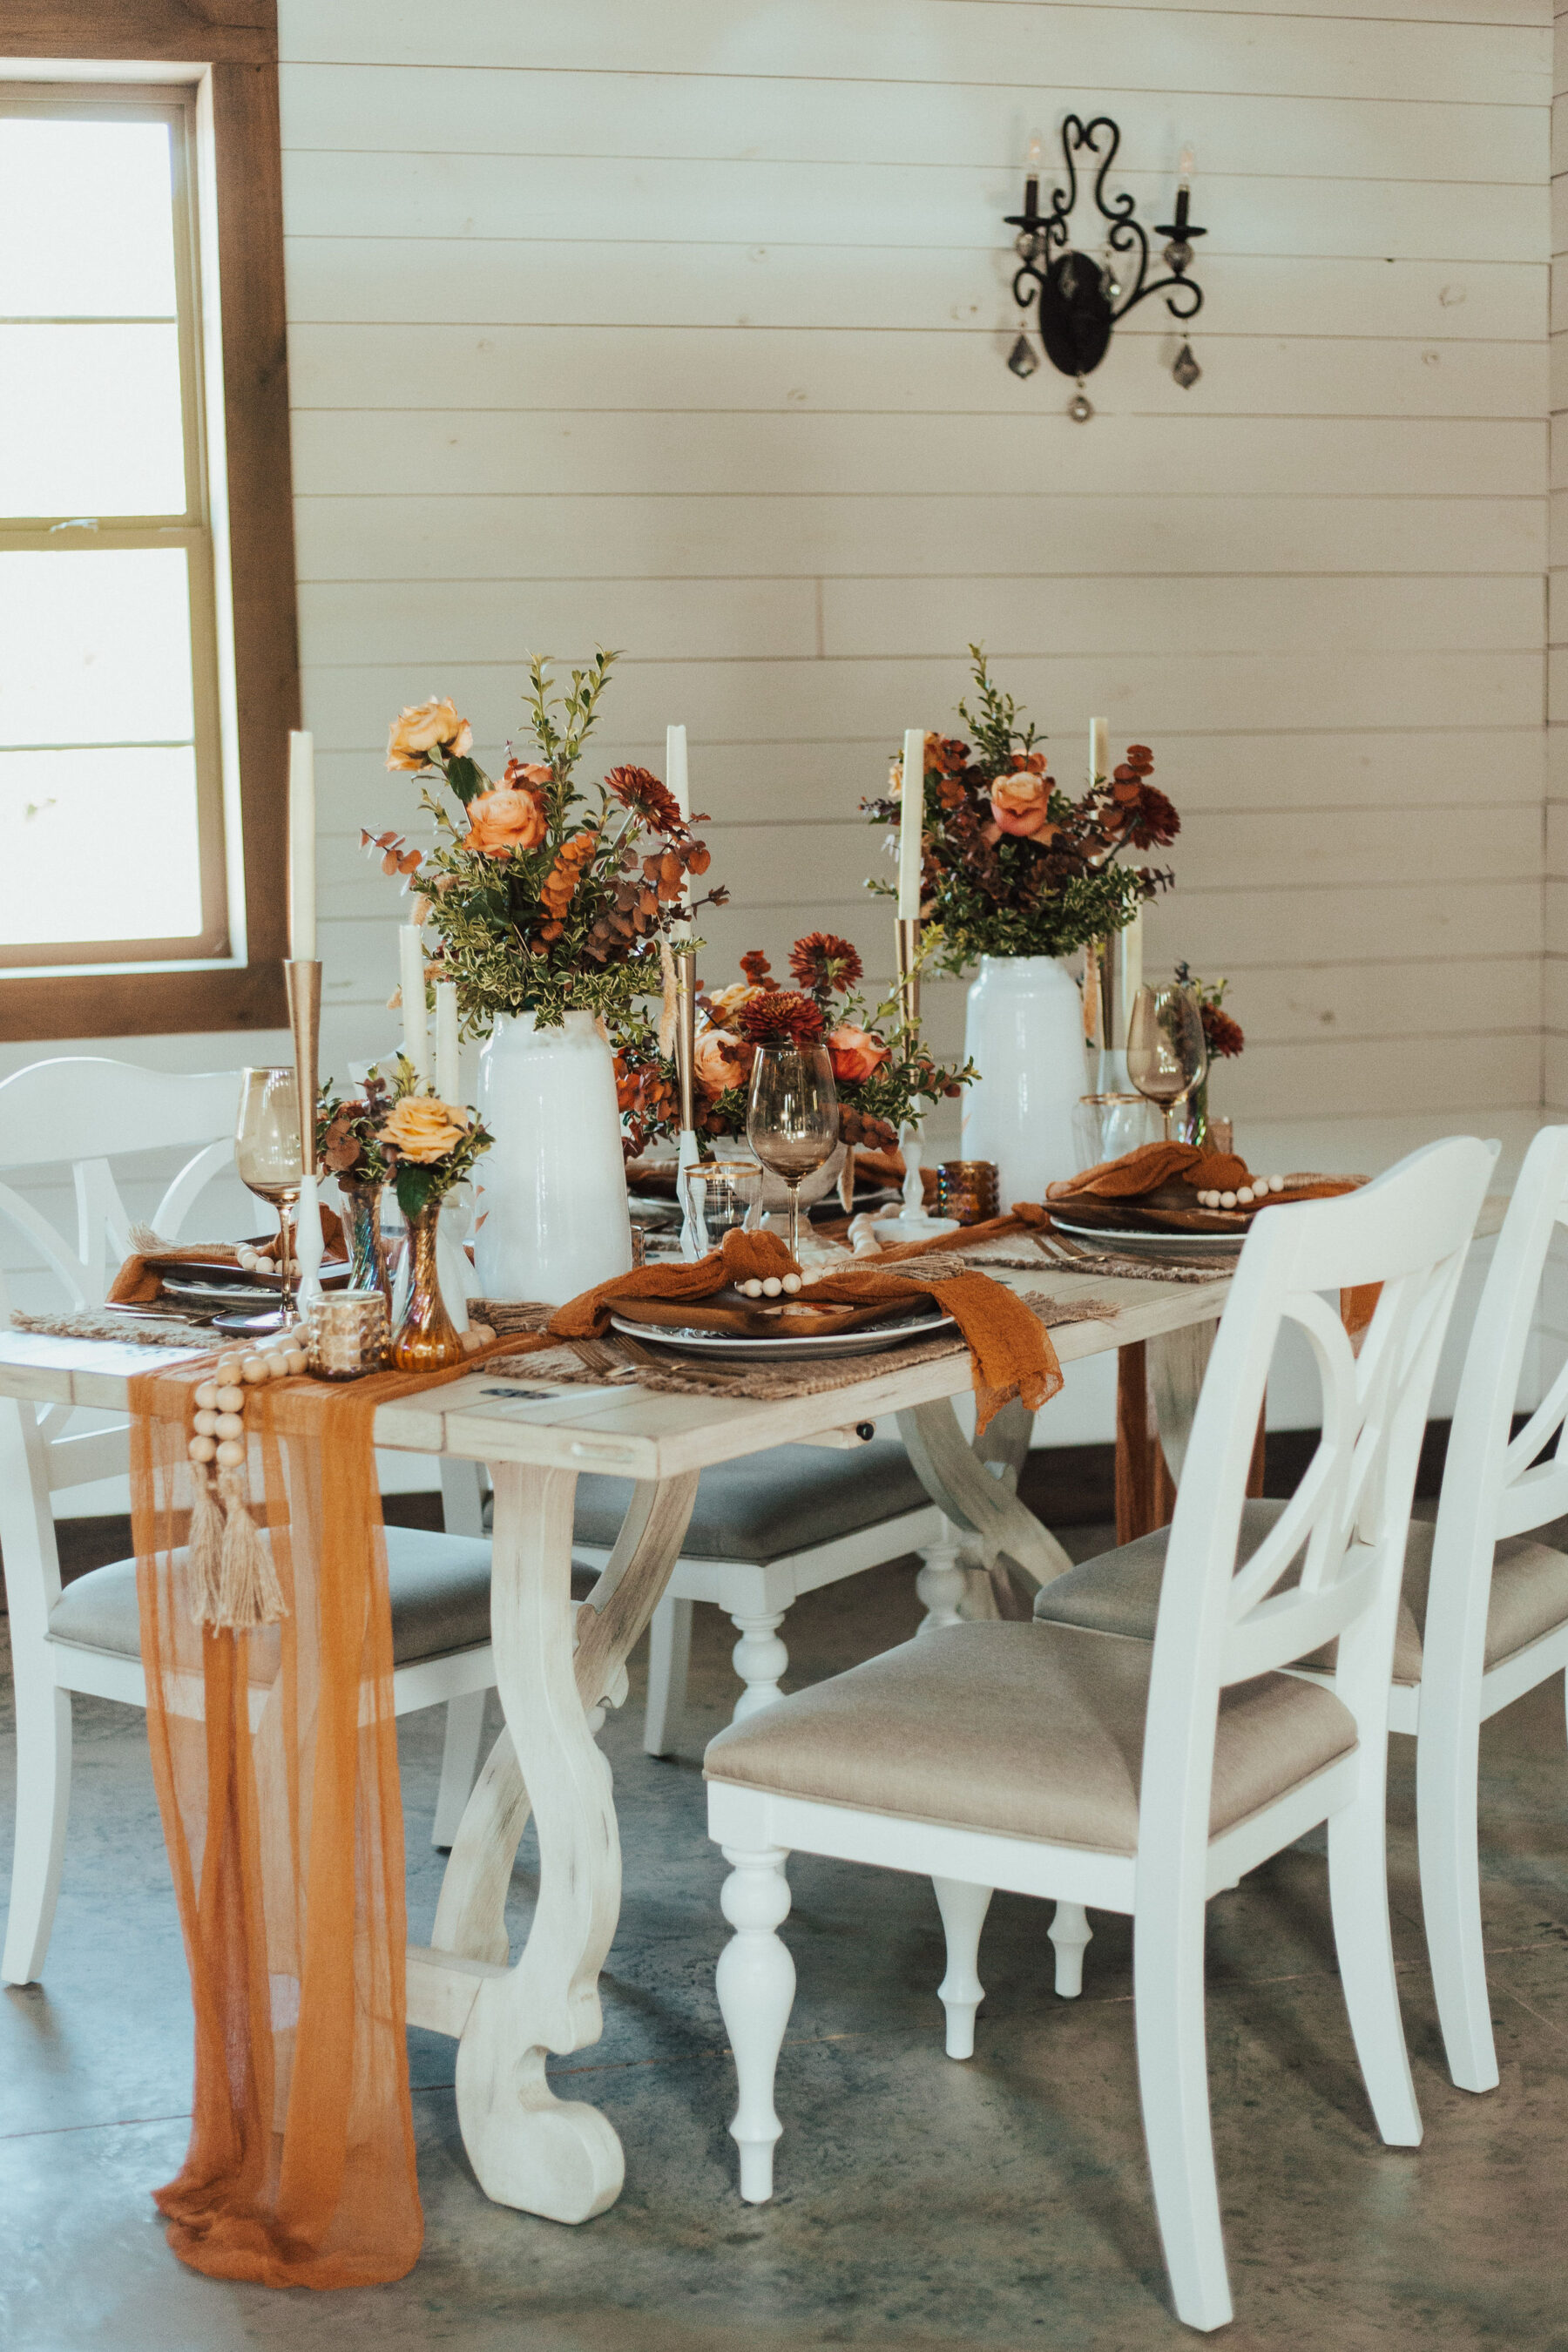 Wedding table decor inspiration: Bright Bohemian Photo Shoot from Ina J Designs